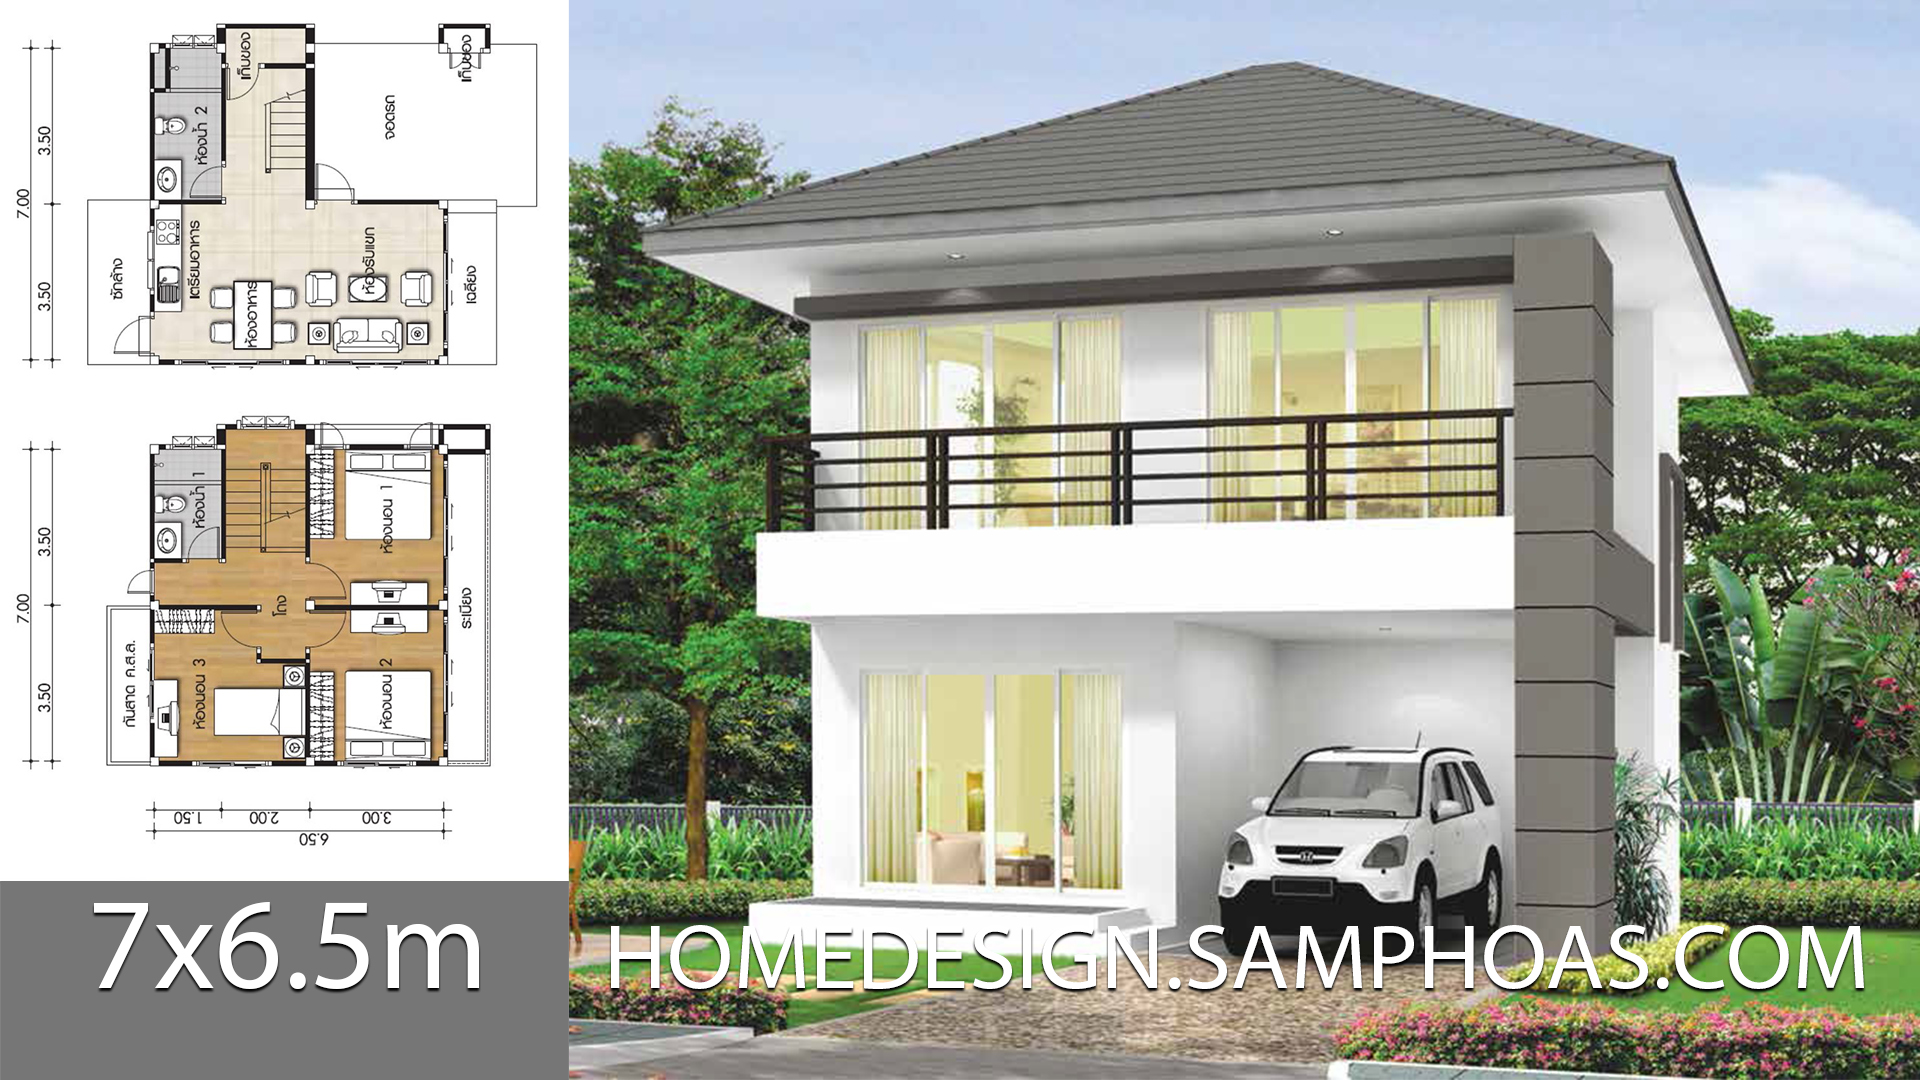 Small Home Plans 7x6.5m with 3 bedrooms - Home Ideas